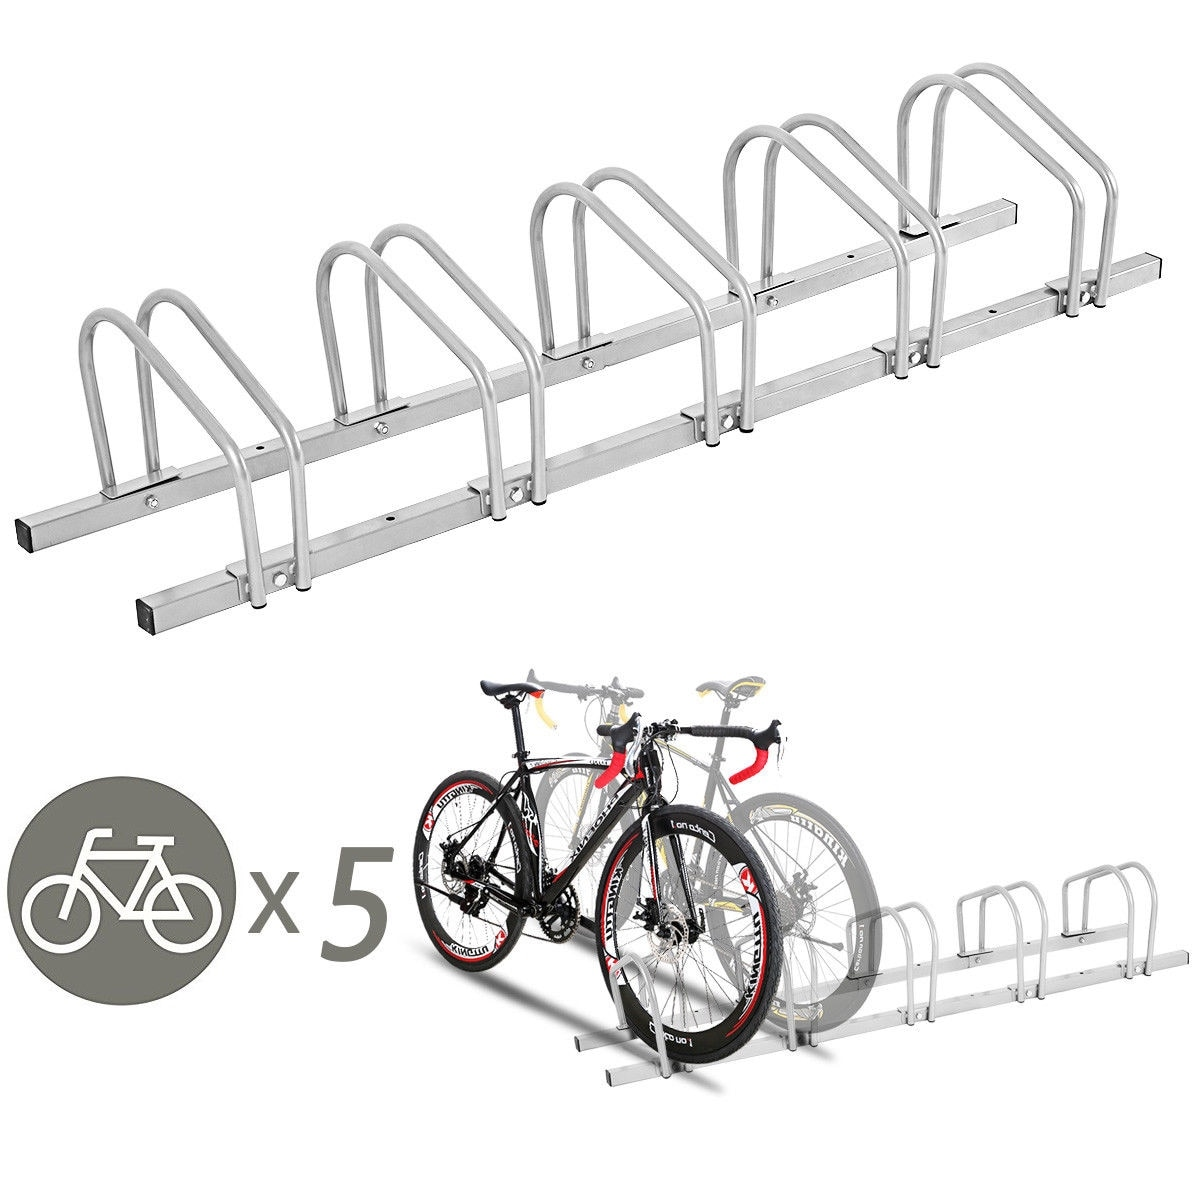 Parking Garage Bike Rack Gymax 5 Bike Bicycle Stand Parking Garage Storage Cycling Rack Silver